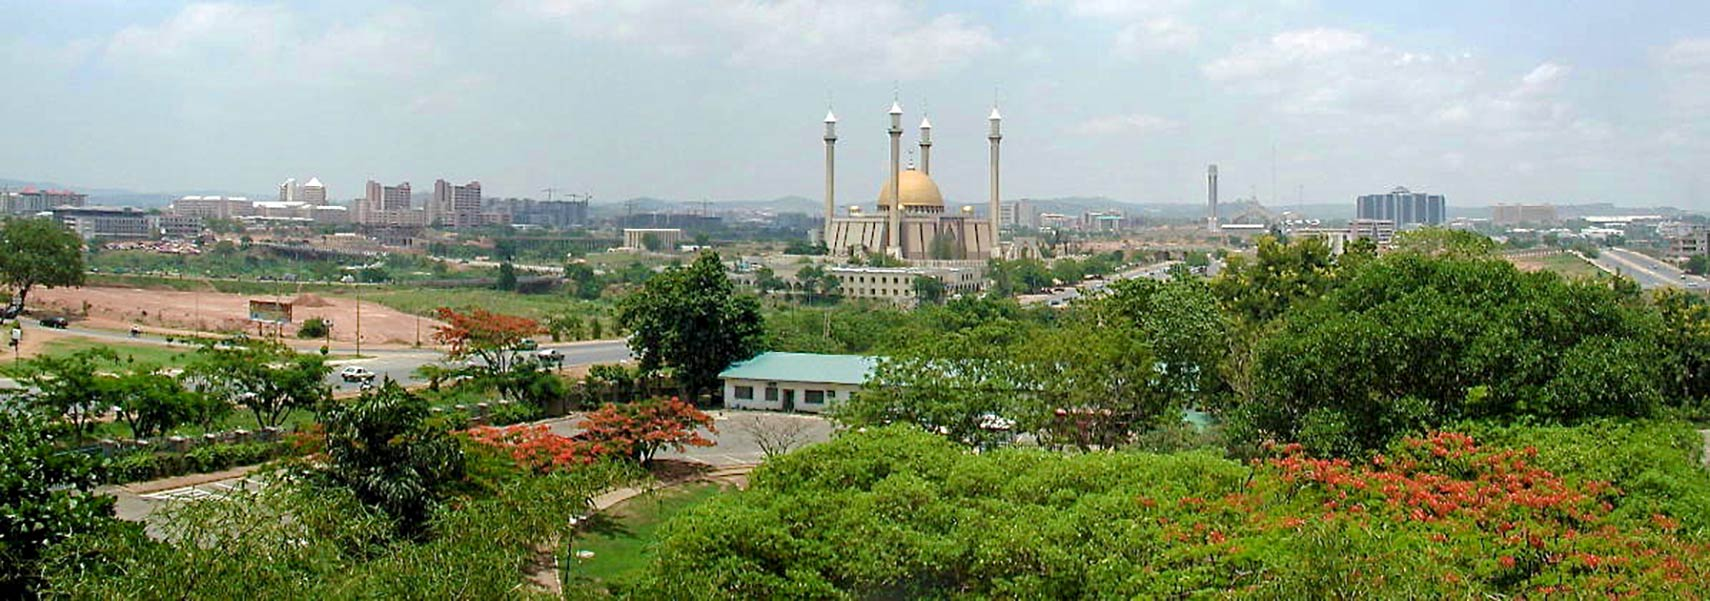 Nigerian National Mosque, city of Abuja